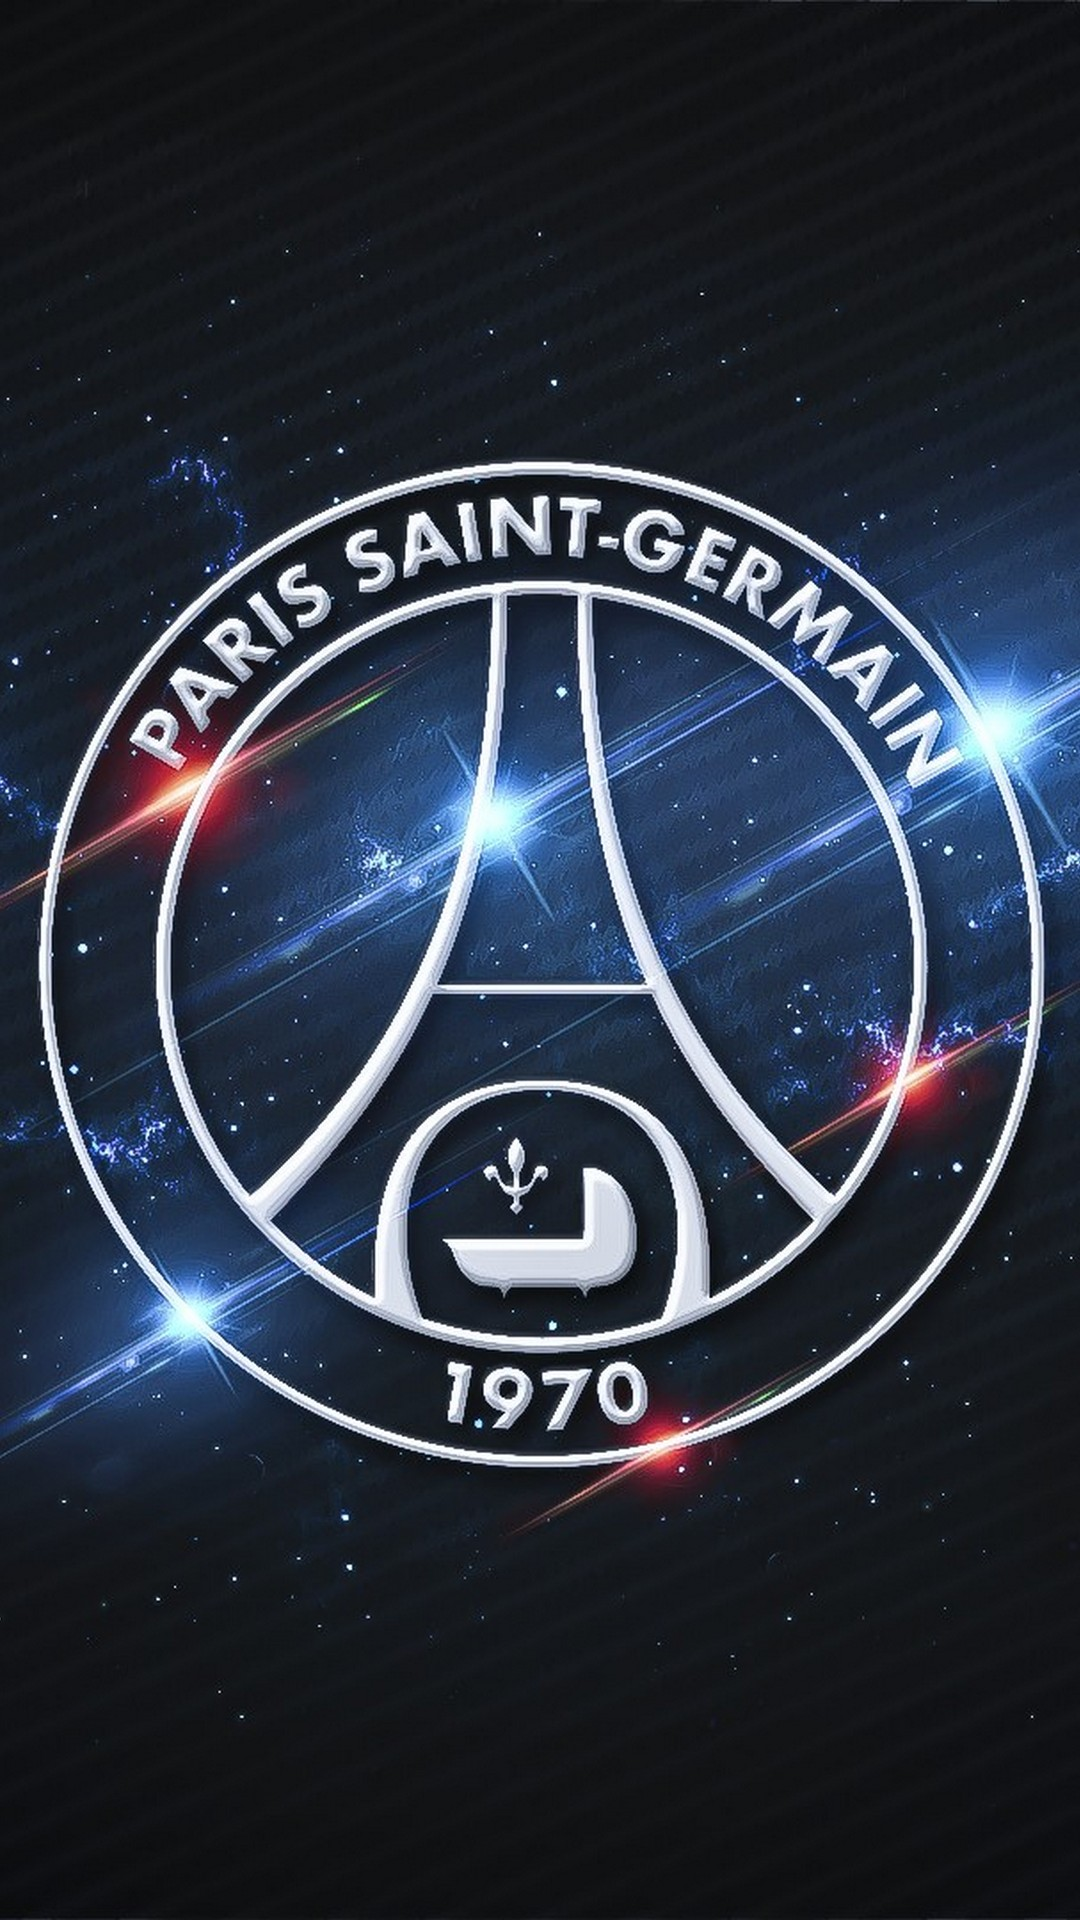 psg hd wallpaper for iphone 2021